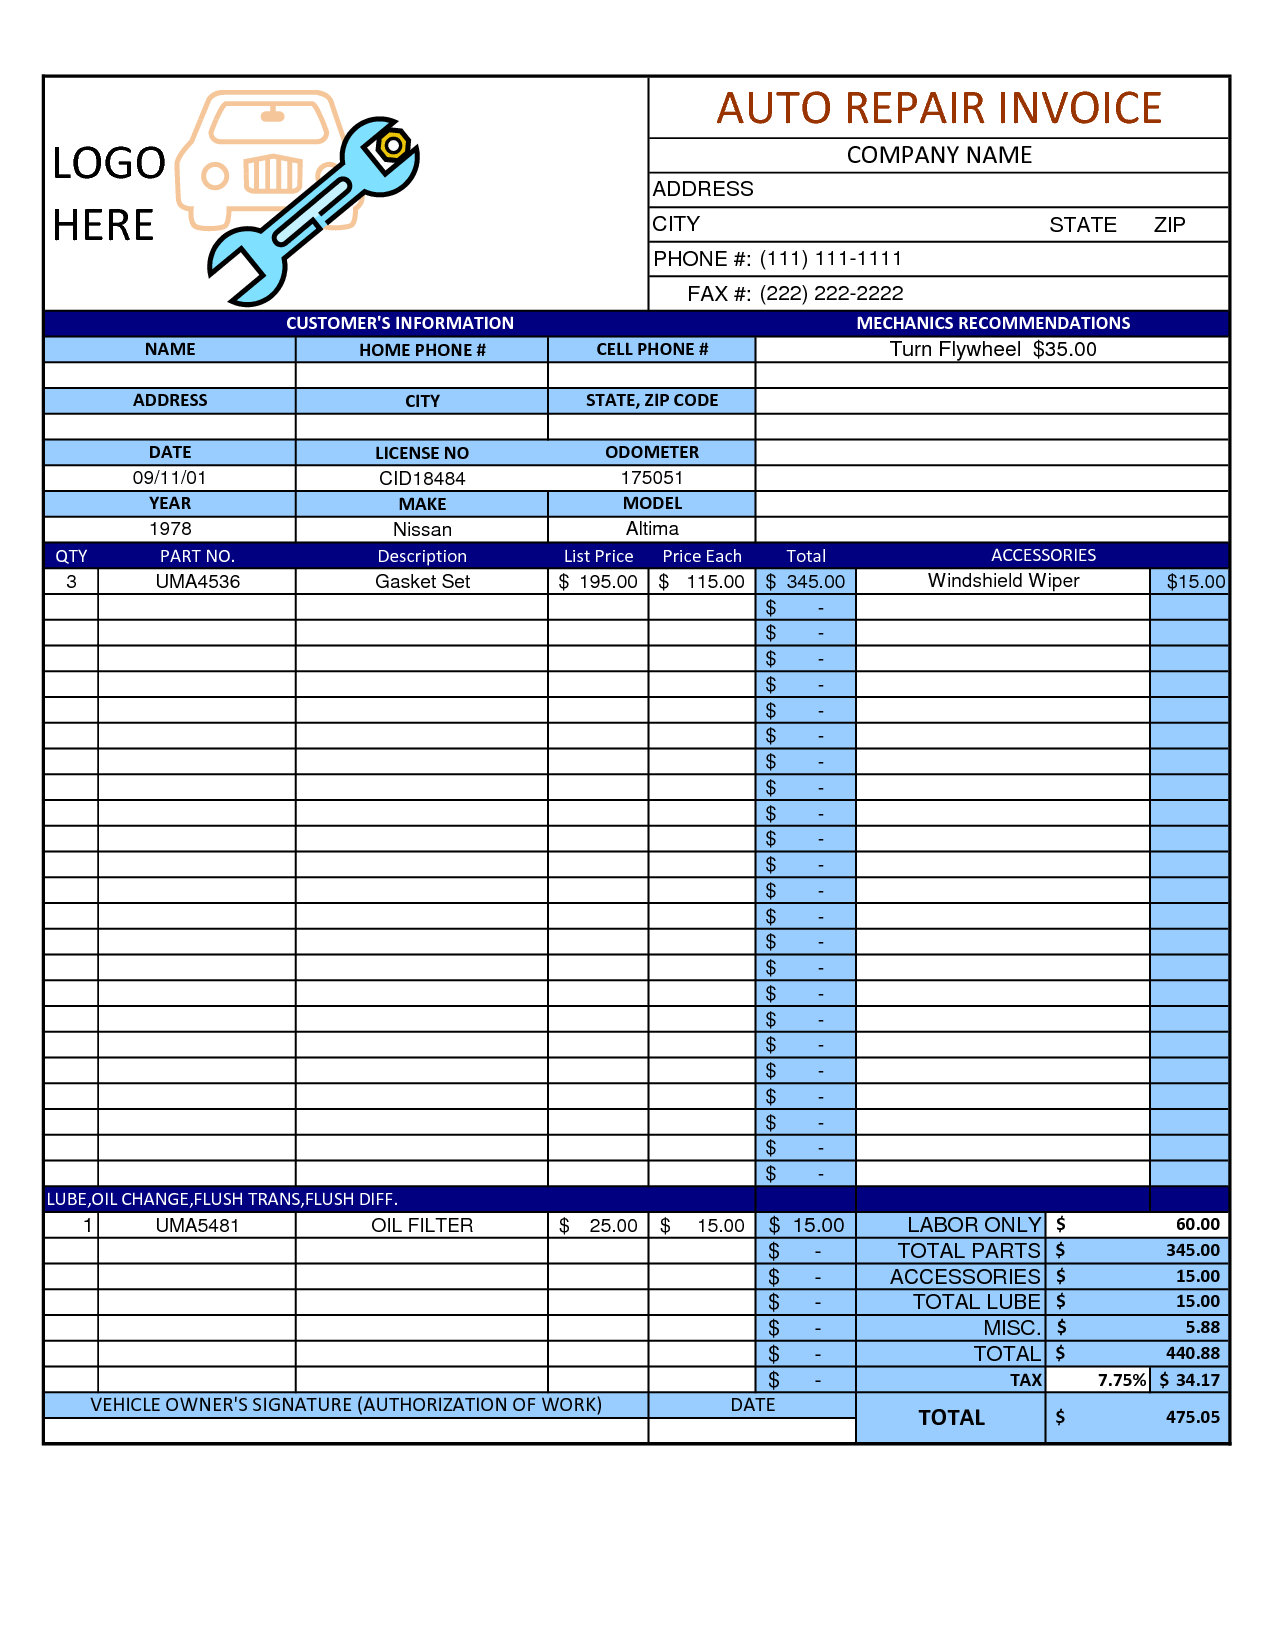 Auto Repair Estimate Template and Auto Repair Invoice Template Word Invoice Example